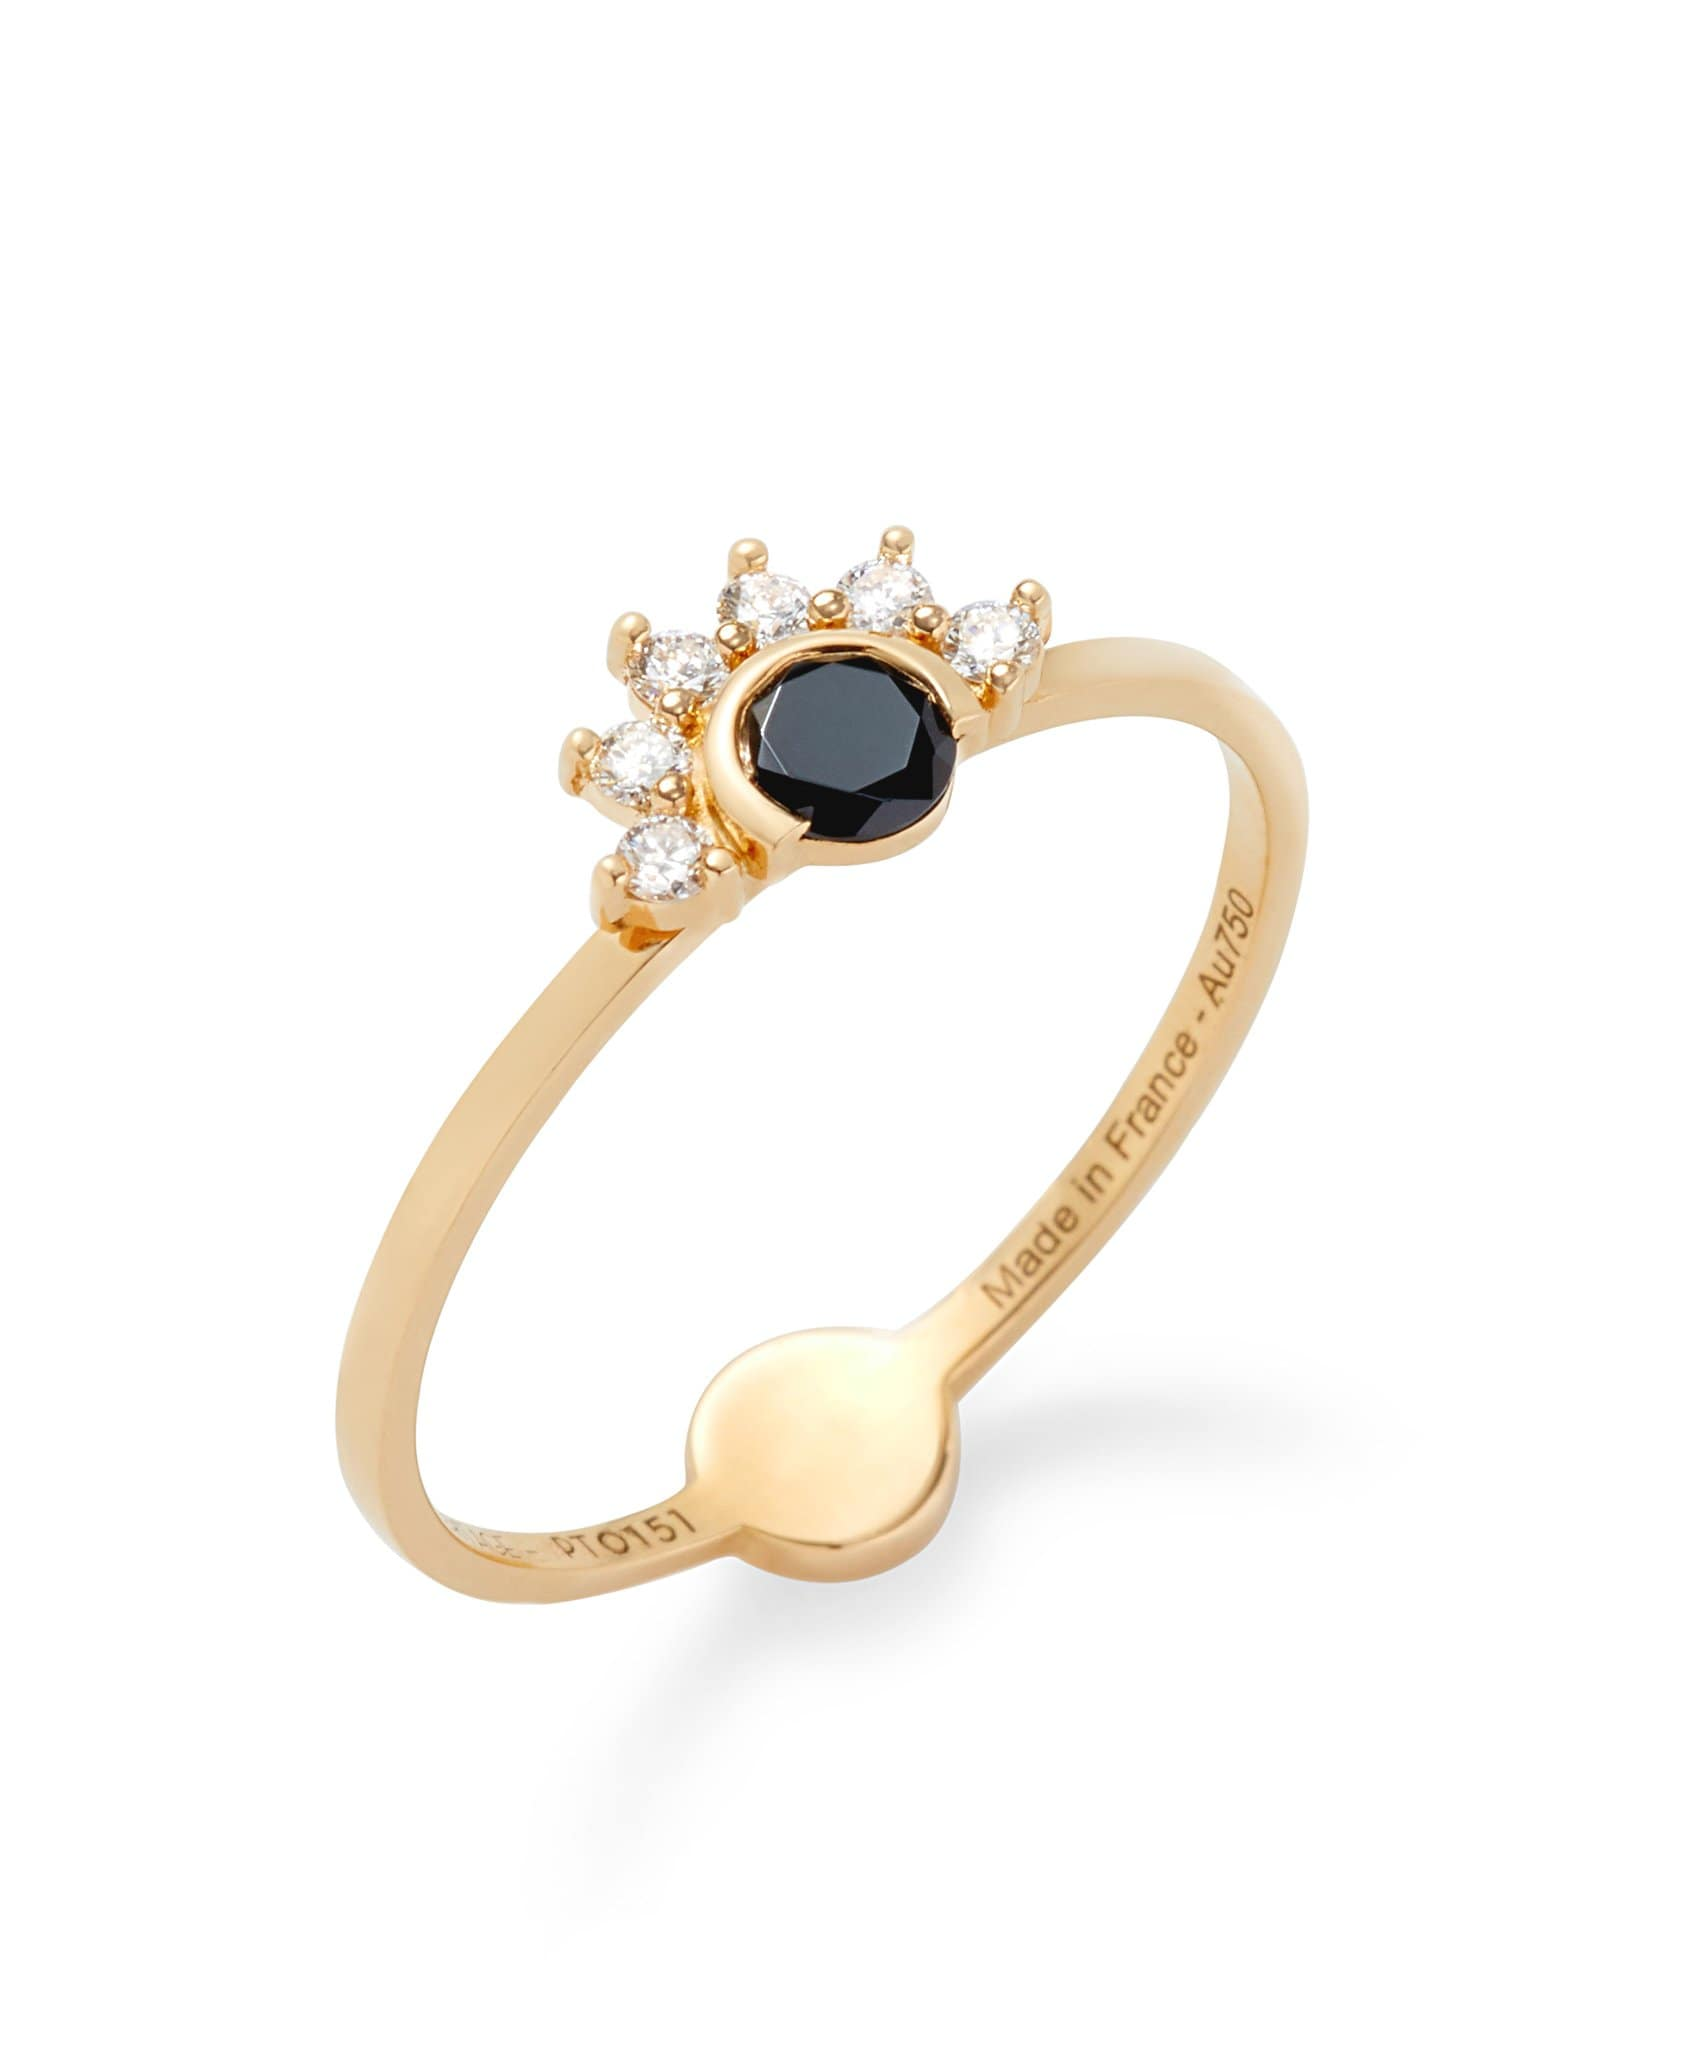 Black Spinel Ring: Discover Luxury Fine Jewelry | Nouvel Heritage